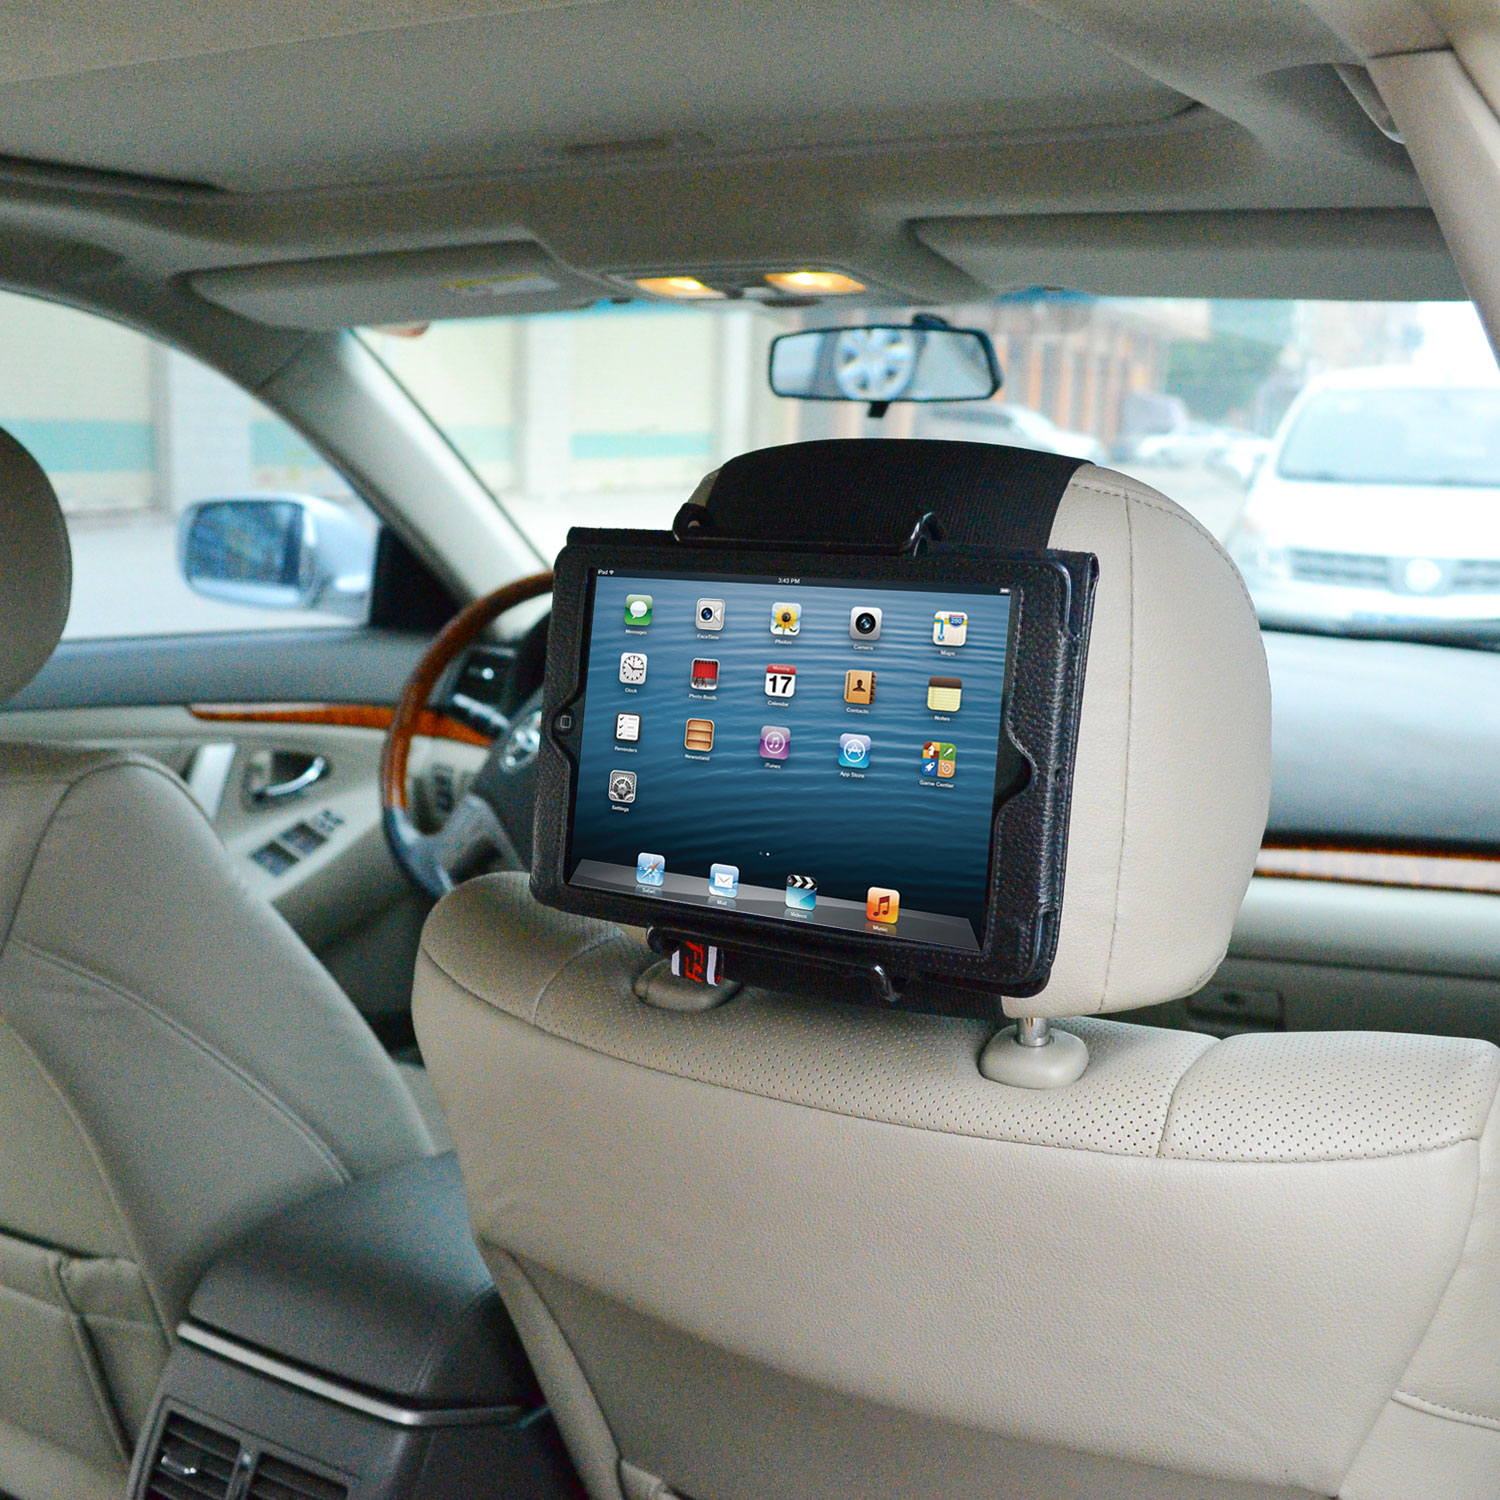 TFY Universal Car Headrest Mount Holder for IPAD, Samsung and other